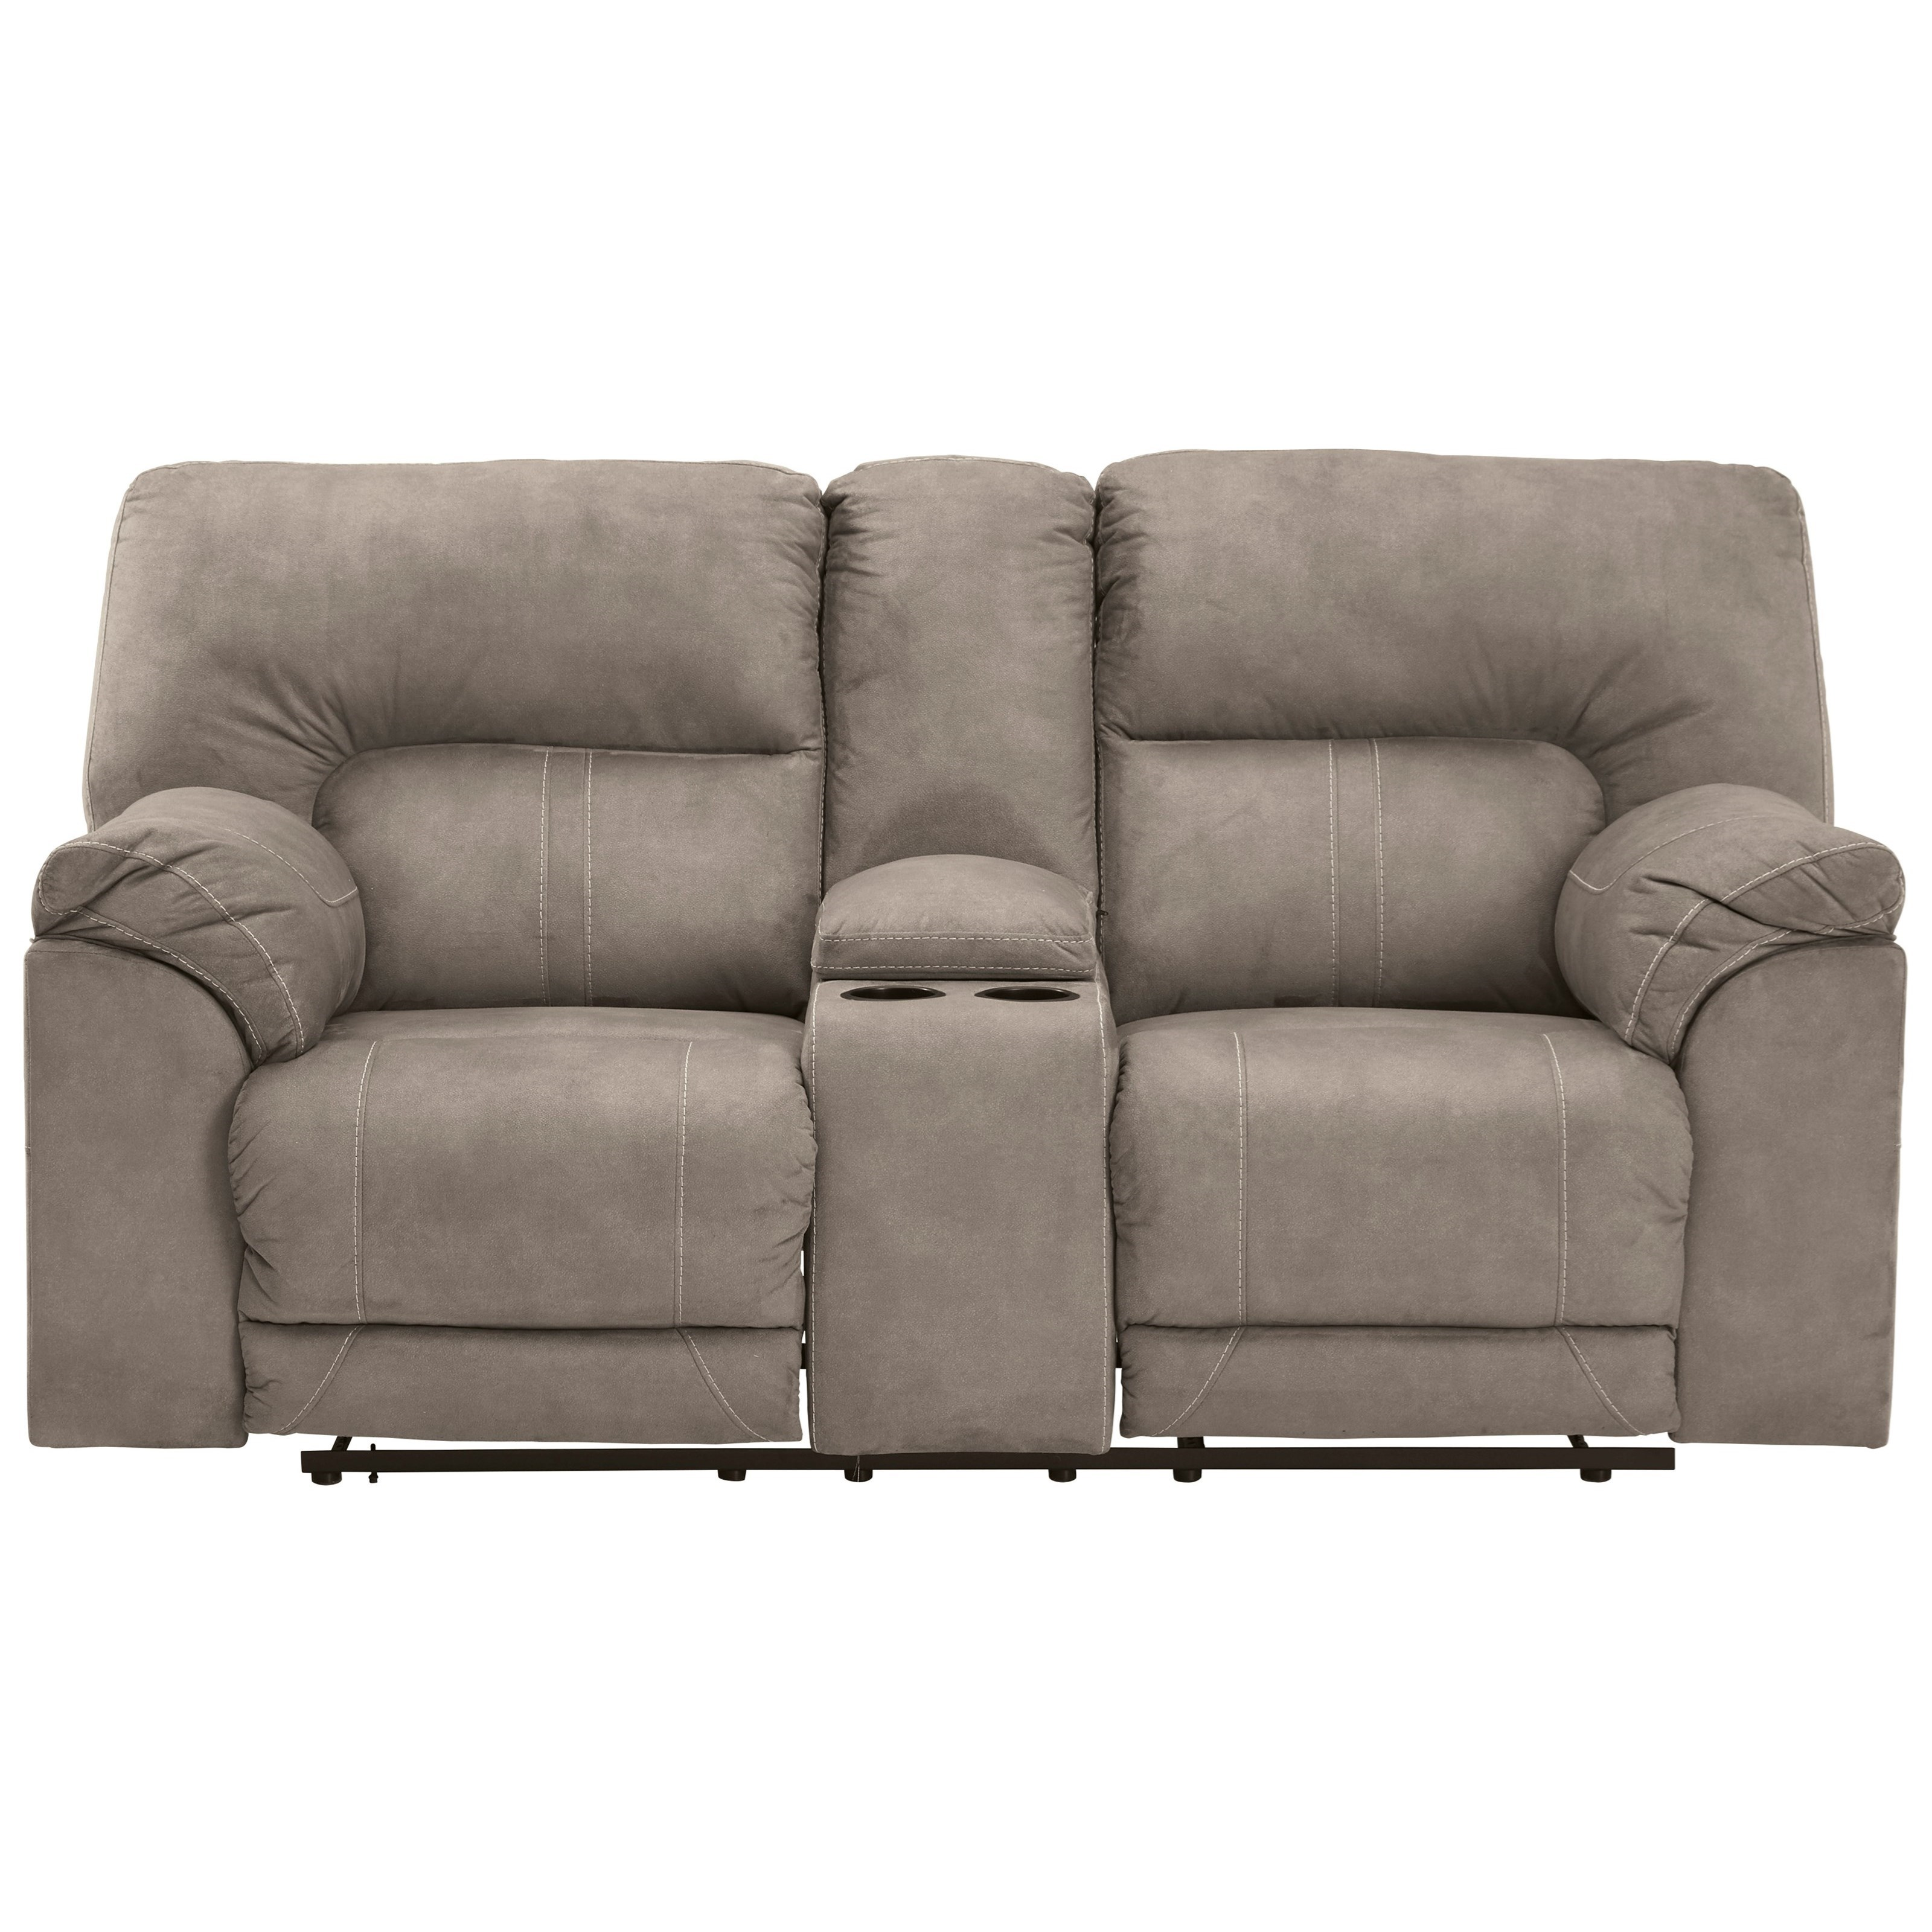 Double Reclining Power Loveseat with Console